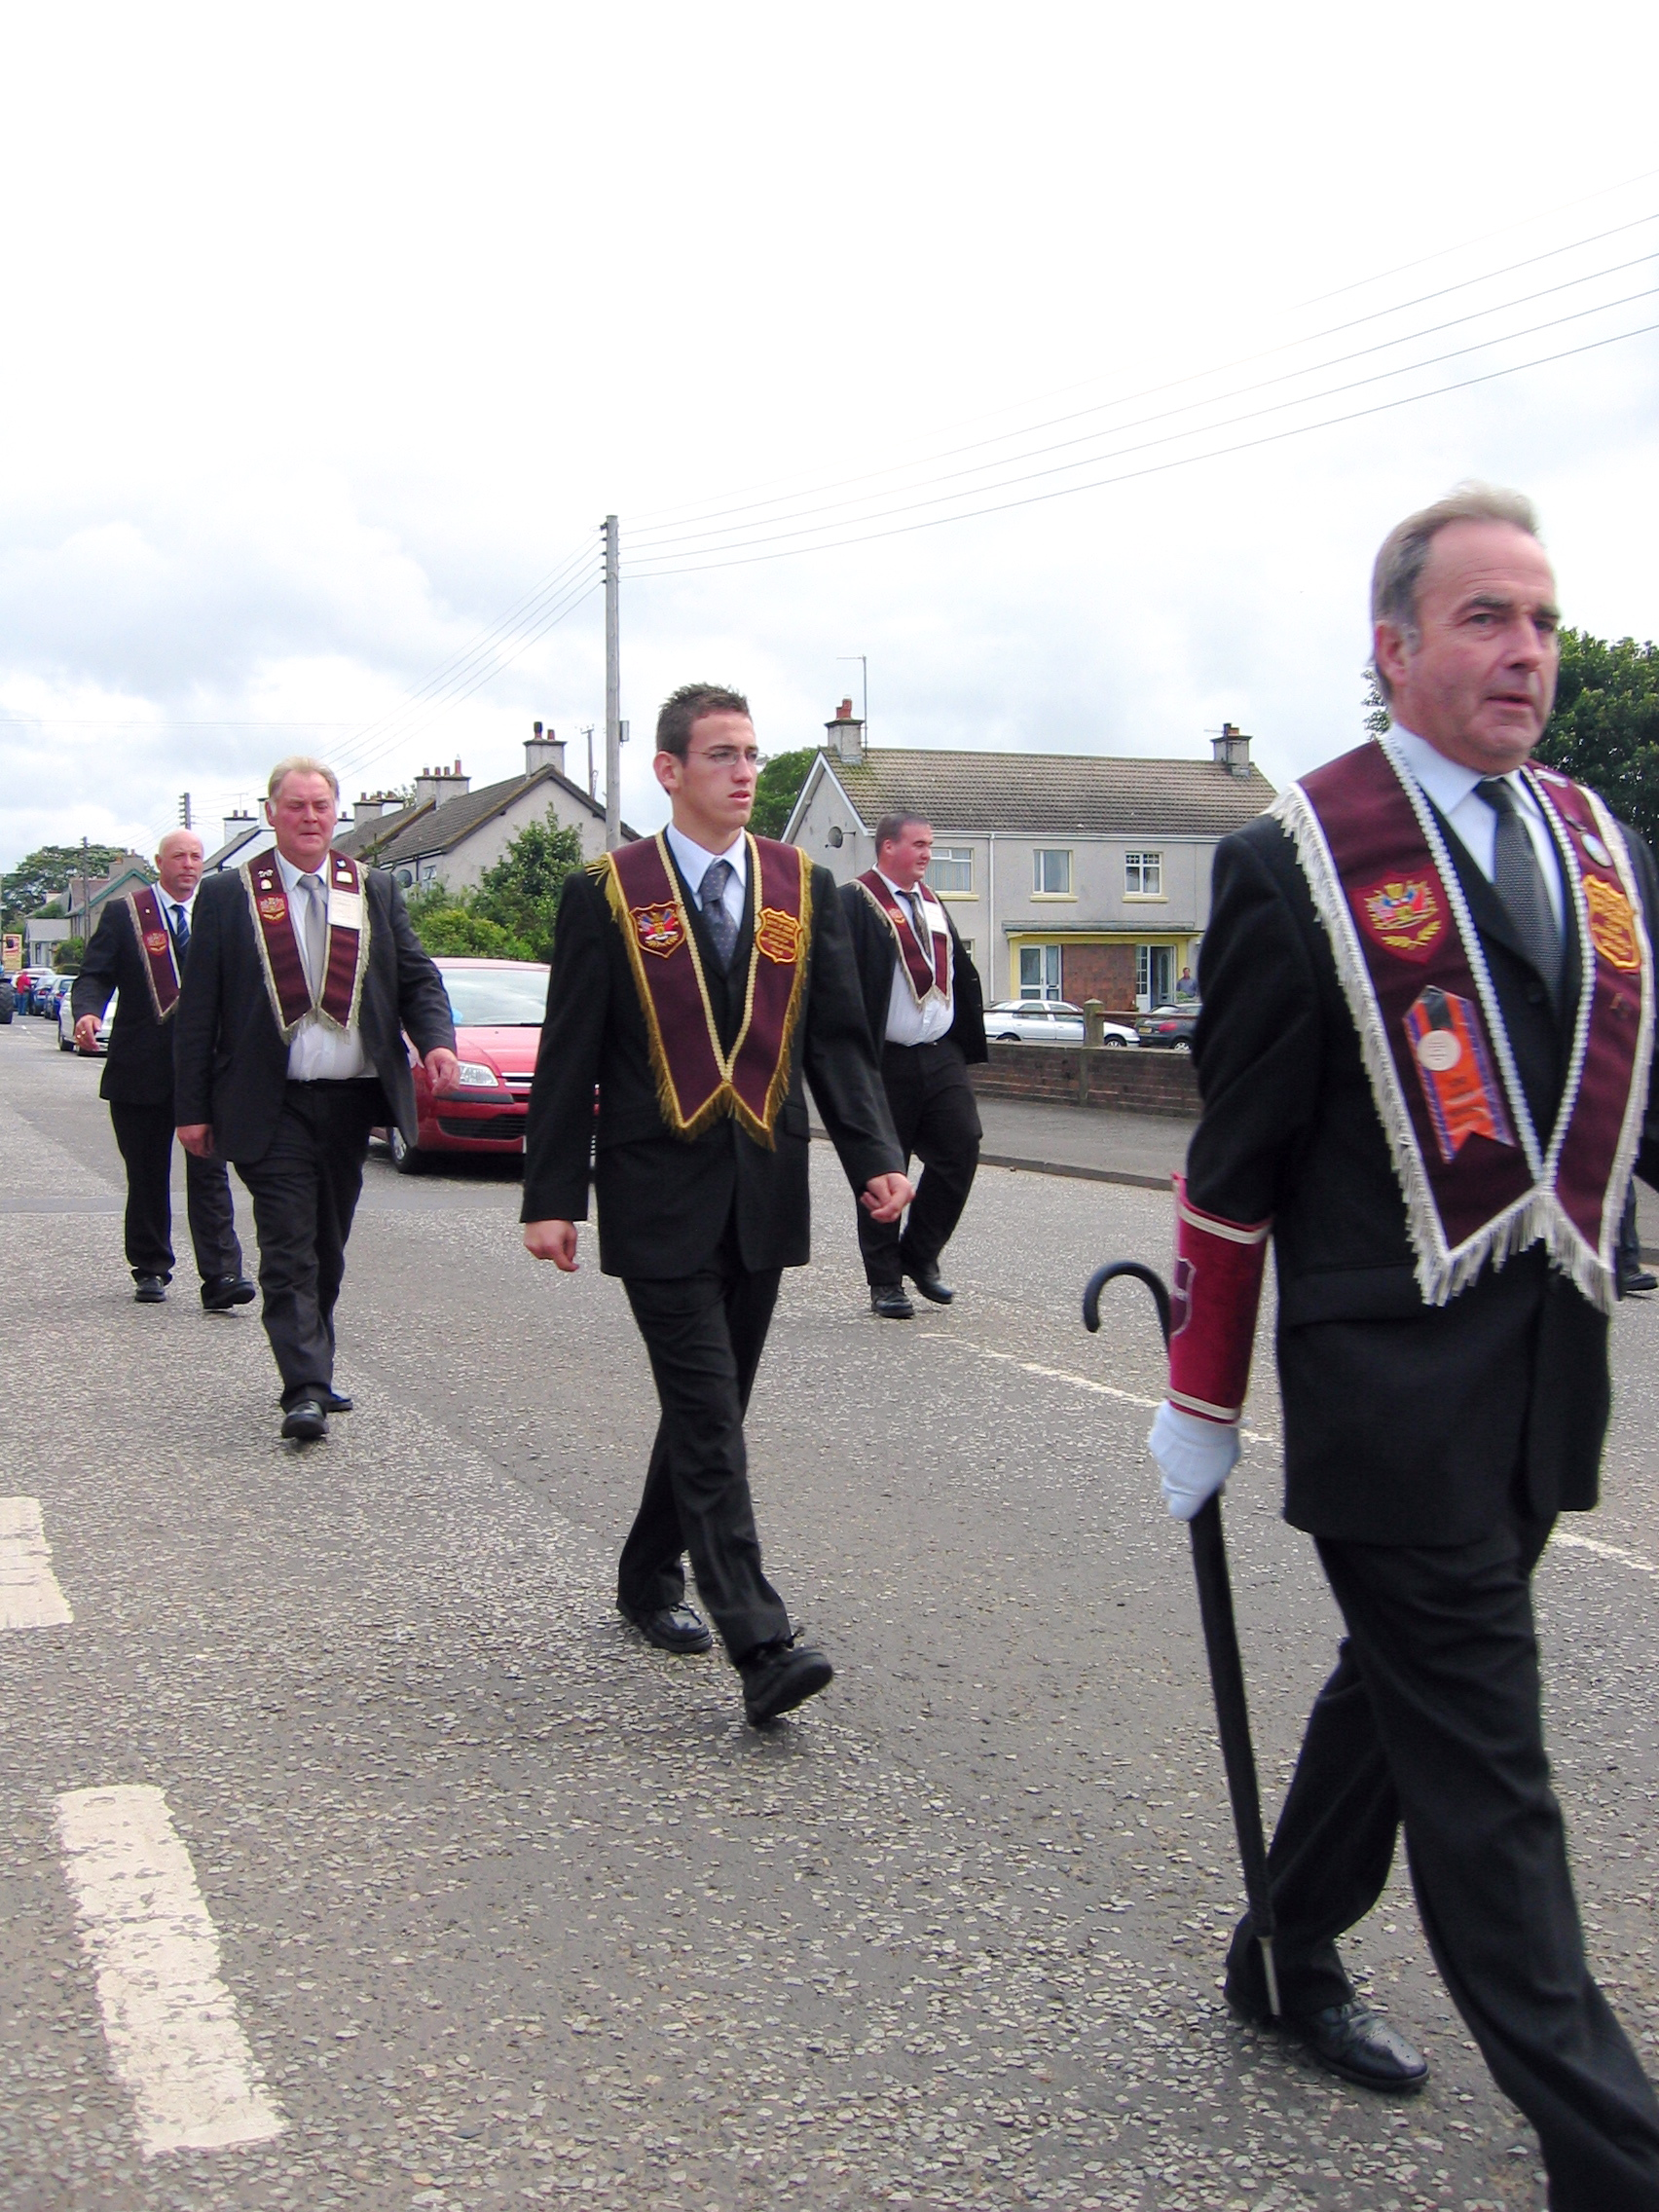 Apprentice Boys of Derry - Wikipedia, the free encyclopedia